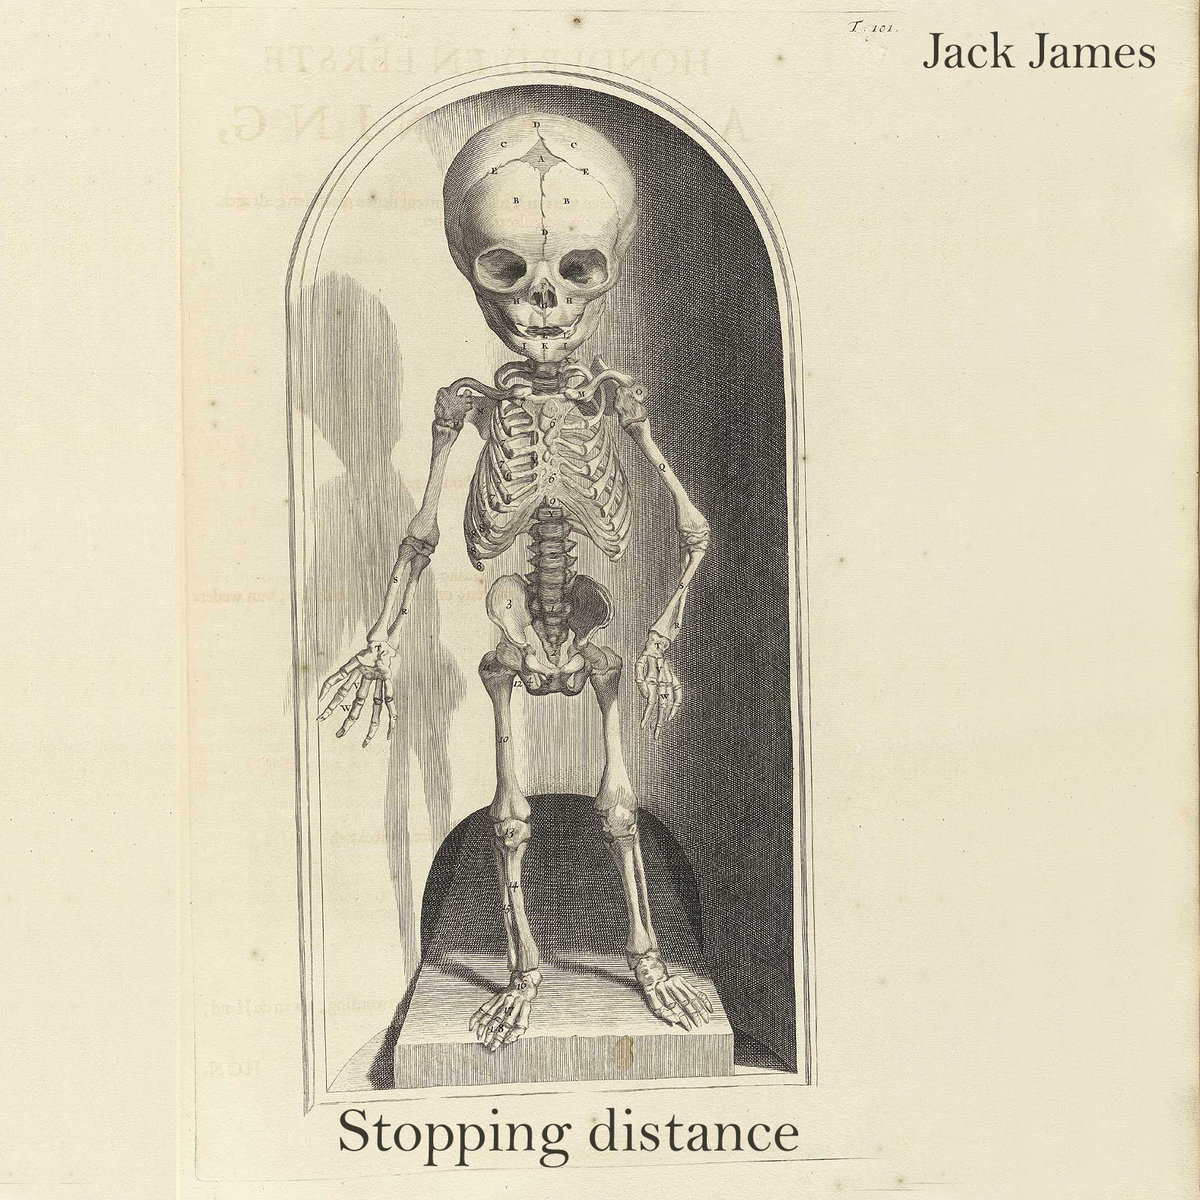 Jack And Jack Distance Album Cover Stopping distance cover art